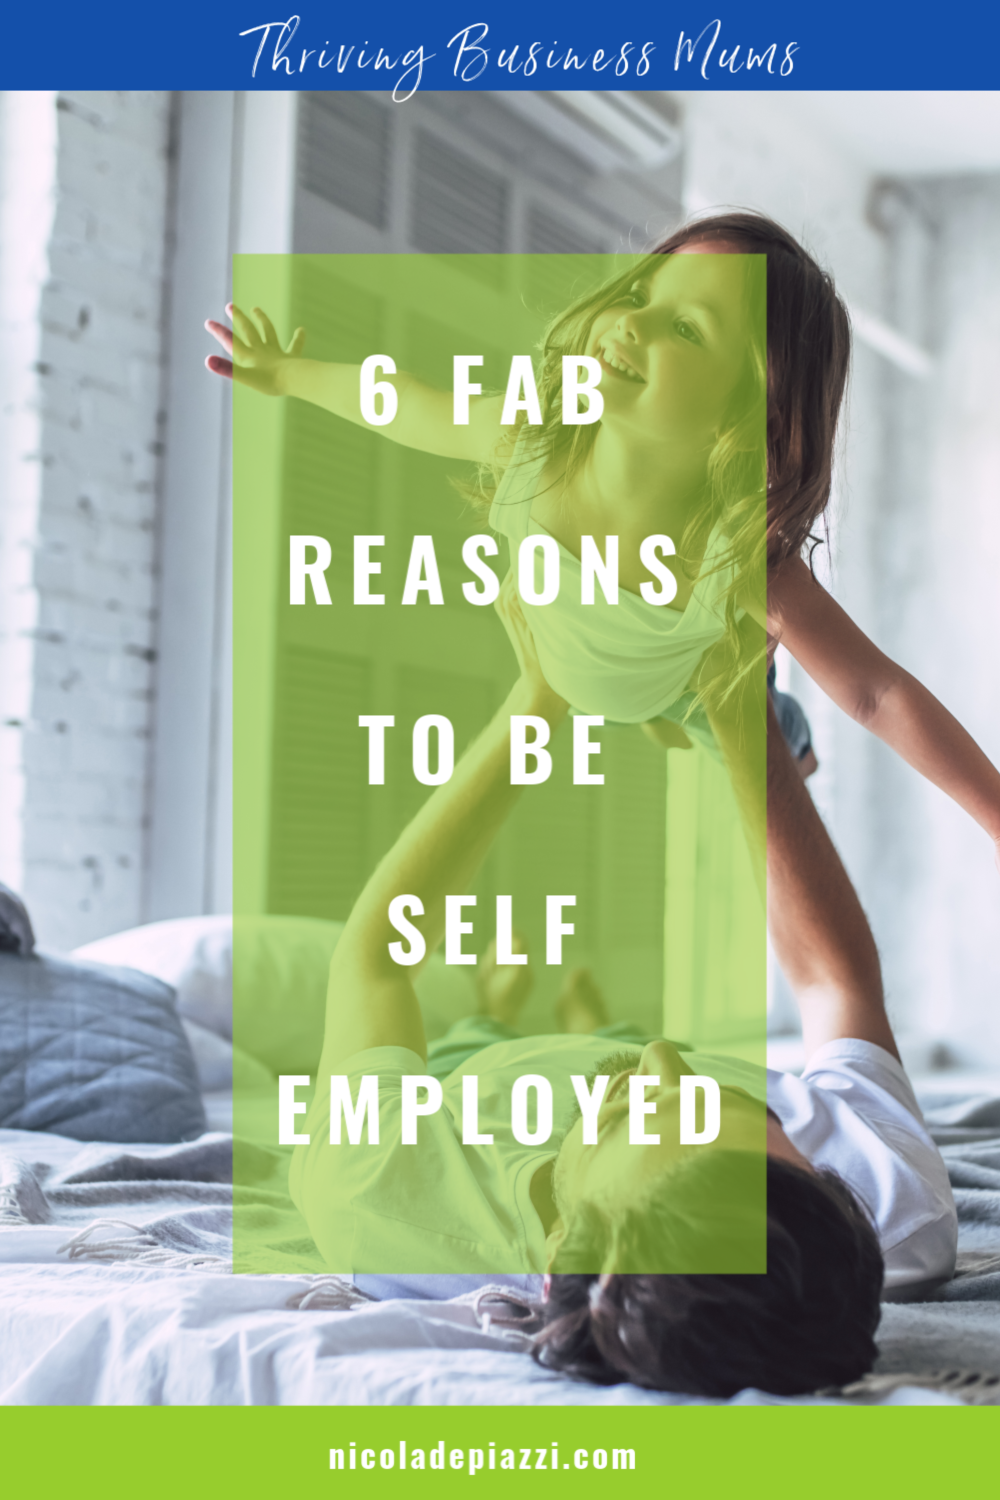 6 FAB REASONS TO BE SELF EMPLOYED